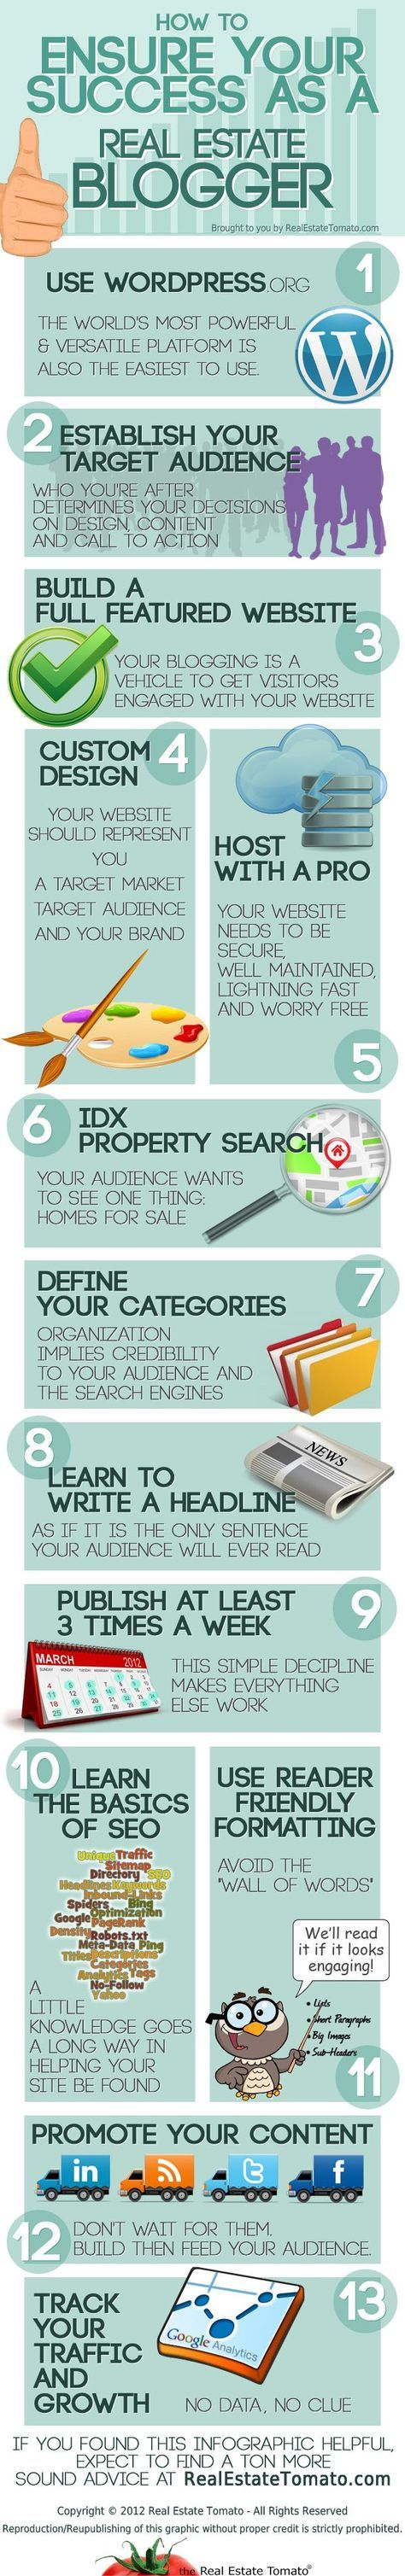 How to Ensure Your Success as a Real Estate Blogger. Great infographic for my real estate friends.